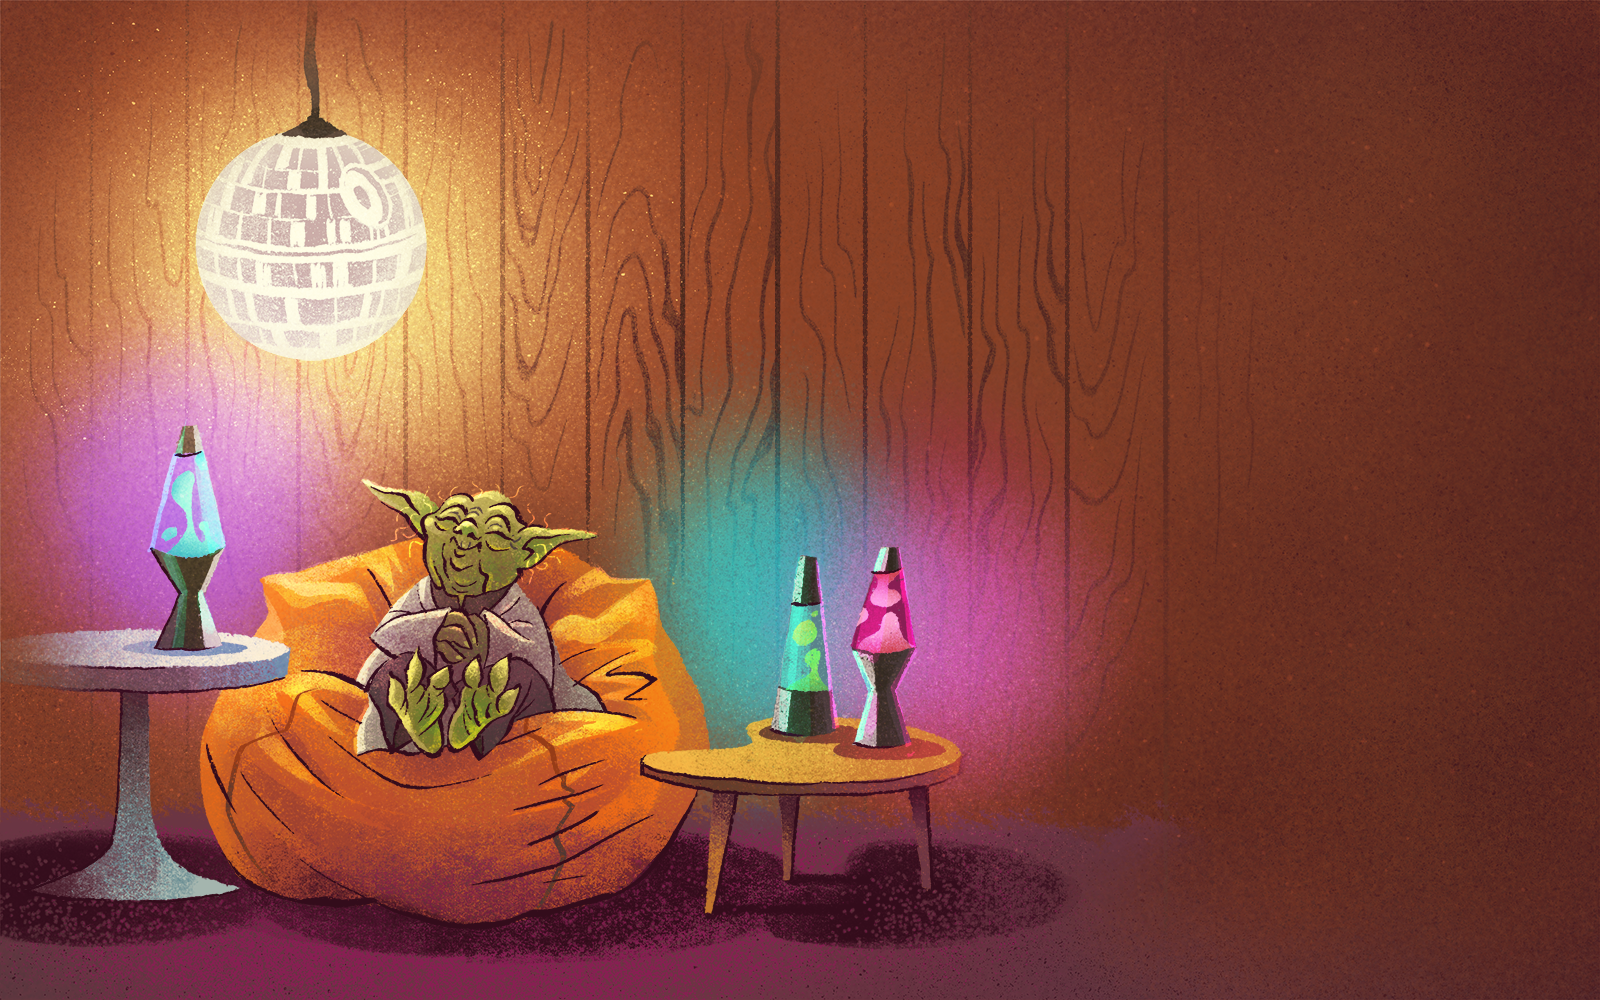 groovy yoda valerie valdivia.png